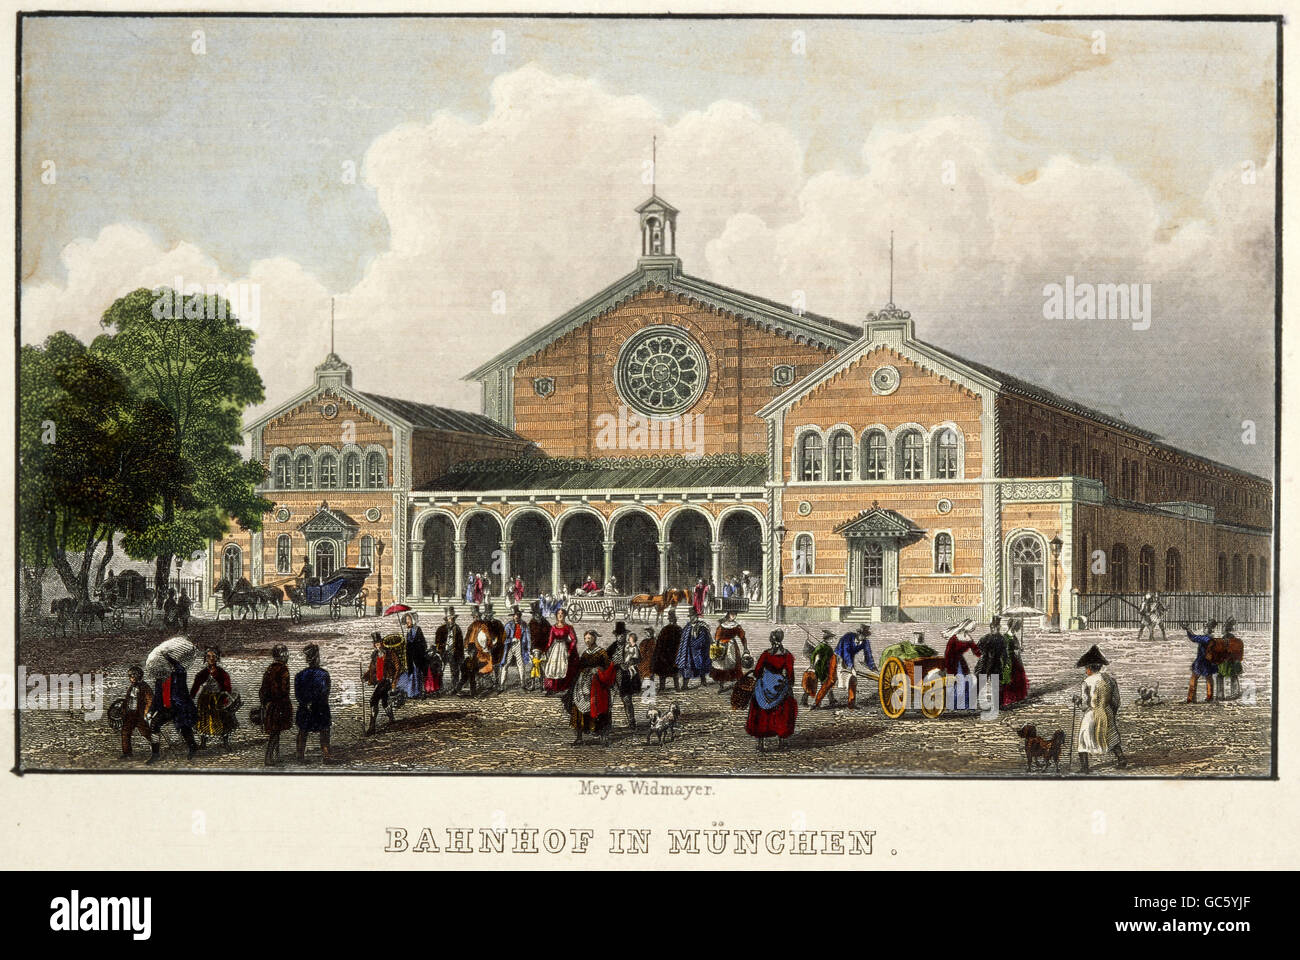 geography / travel, Germany, Munich, buildings, main station, built 1847 - 1849 by Friedrich Buerklein, exterior - Stock Image